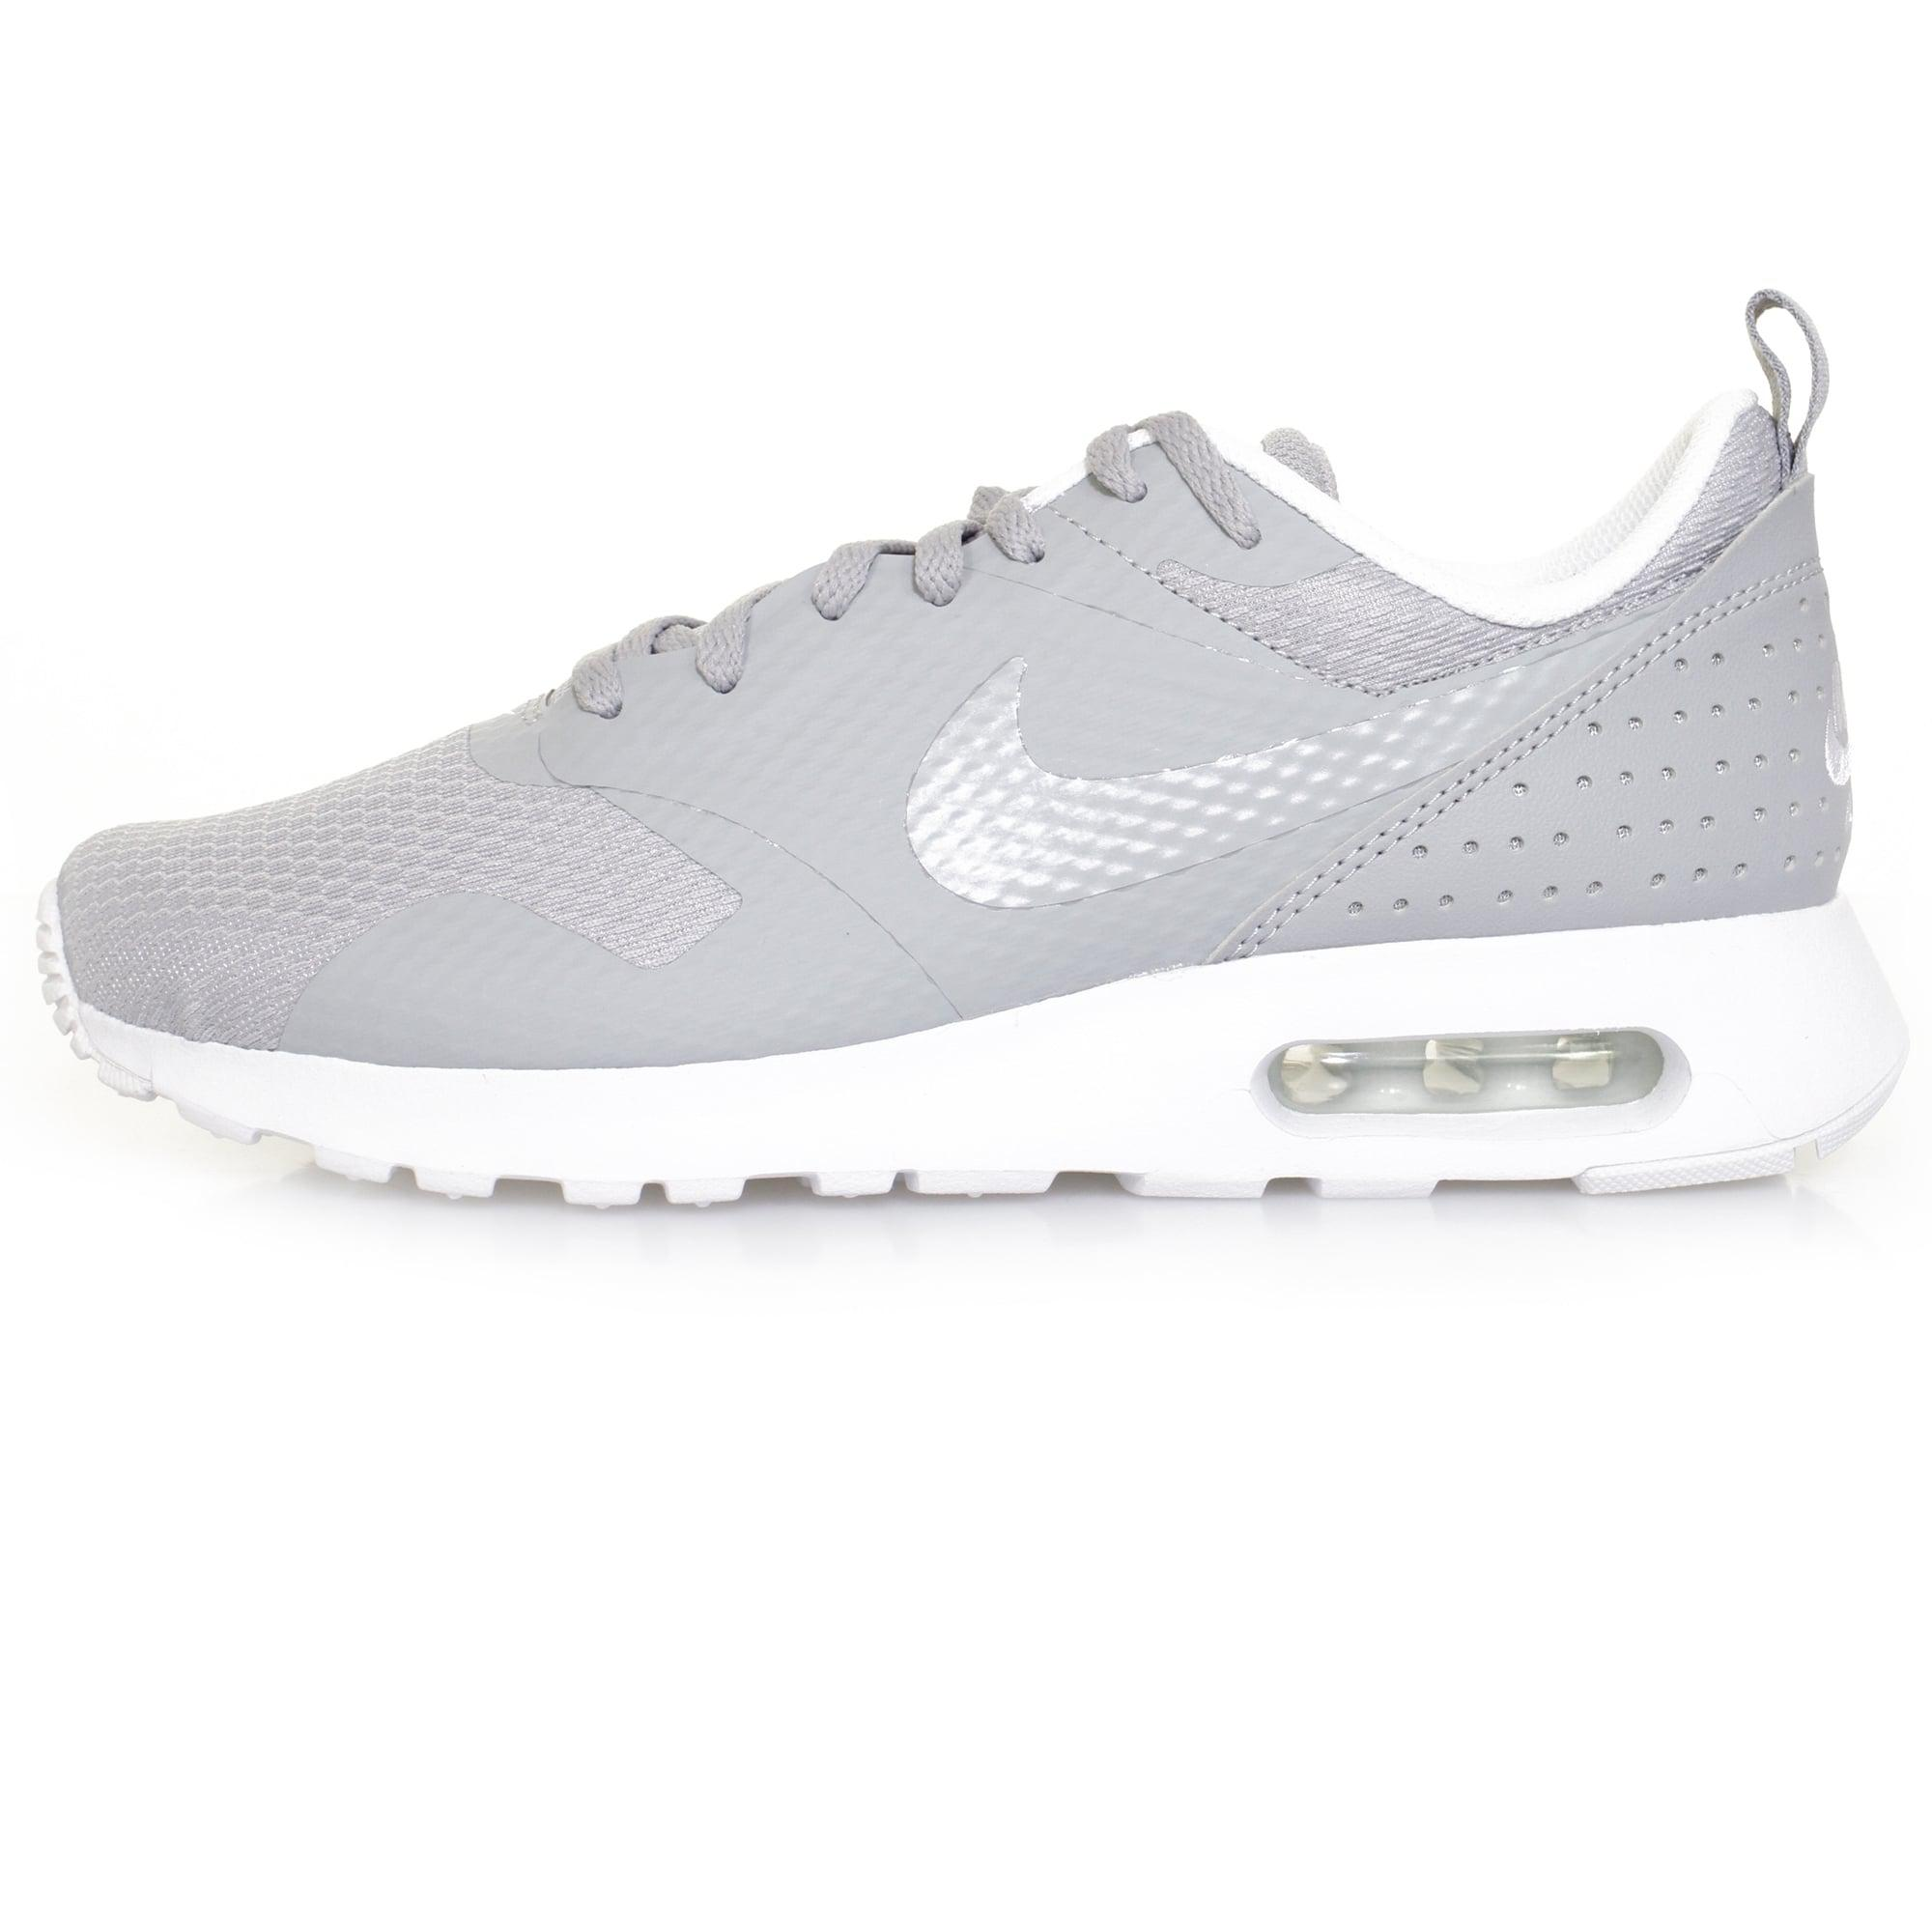 617dd85dc66 Lyst - Nike Air Max Tavas Wolf Grey Shoe 705149 in Gray for Men